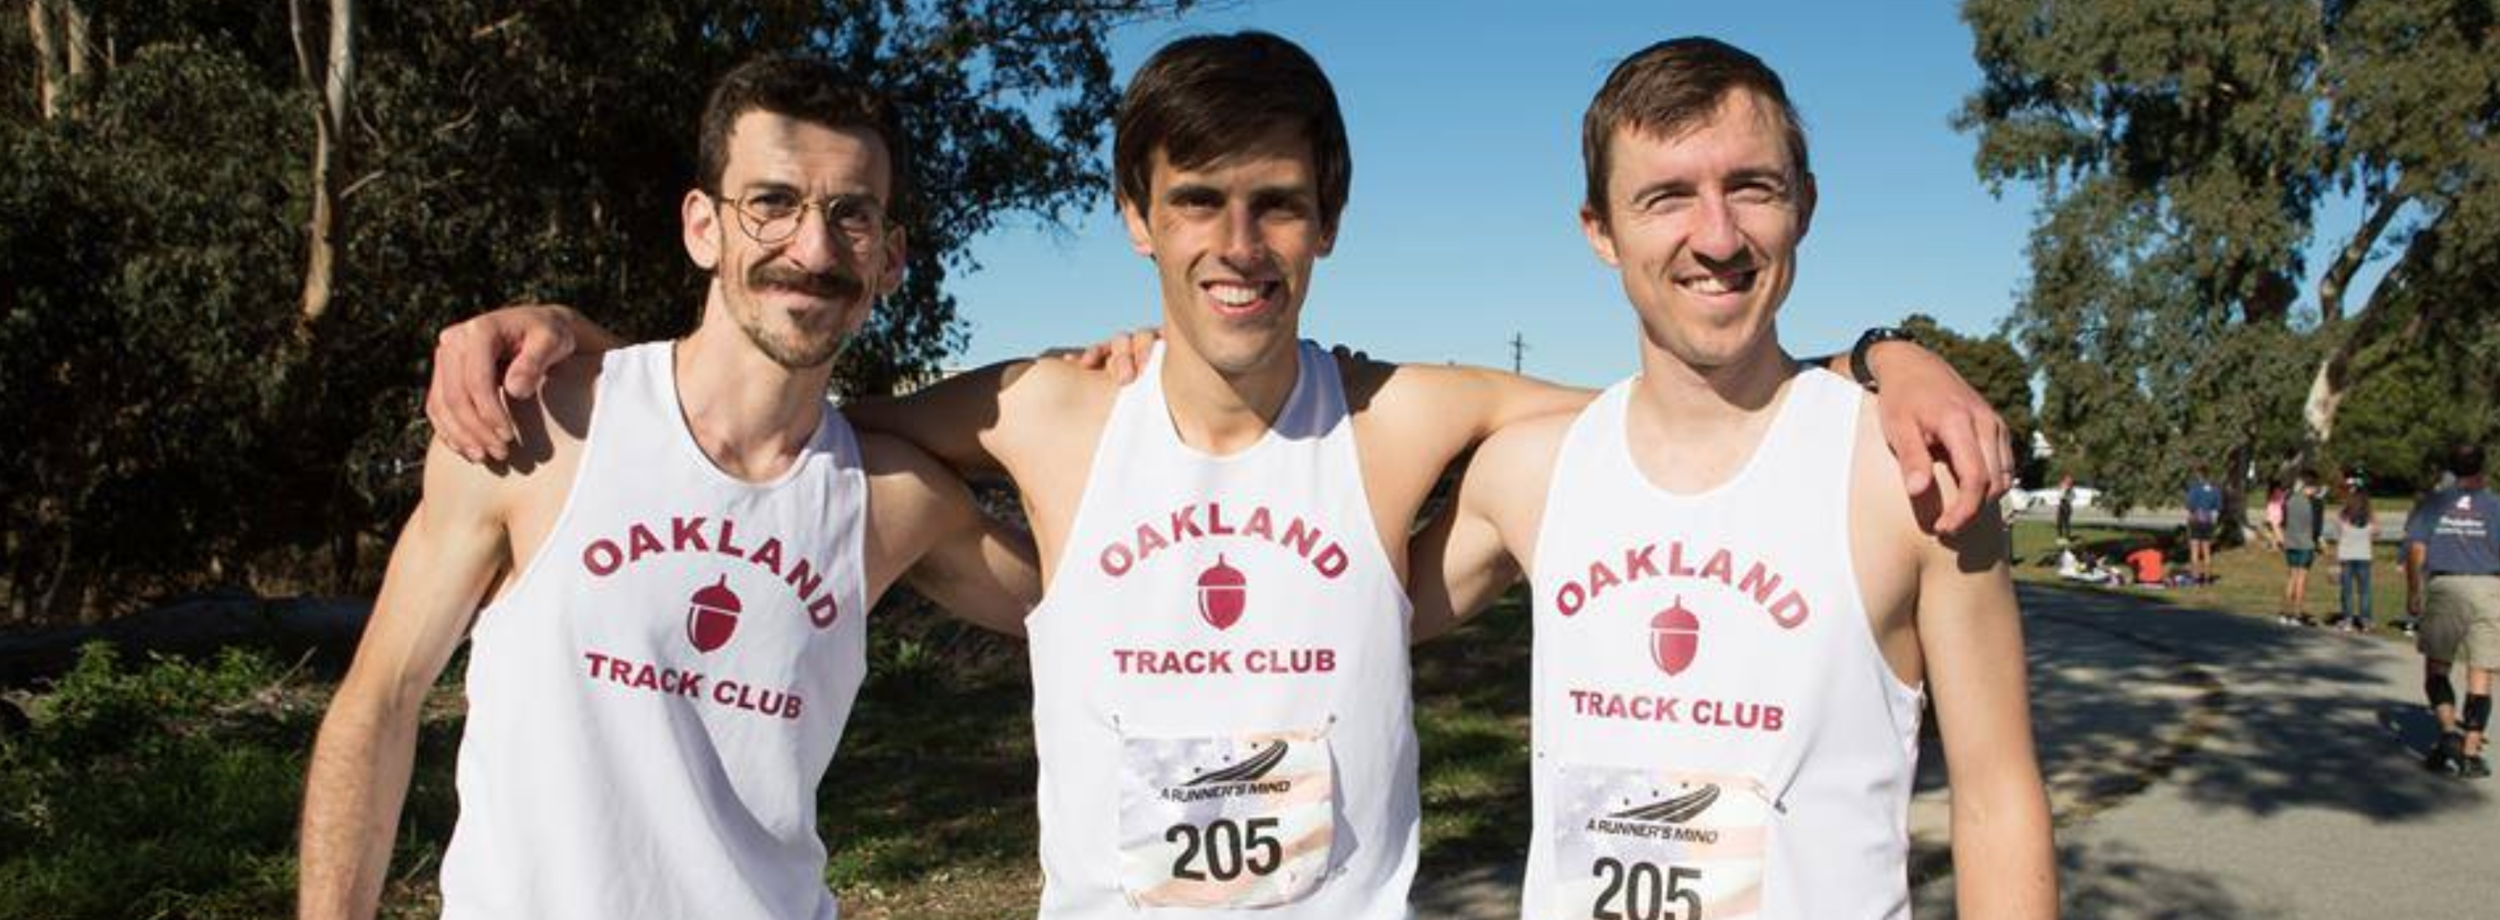 Oakland_Track_Club_Track_Club_slide_three.png